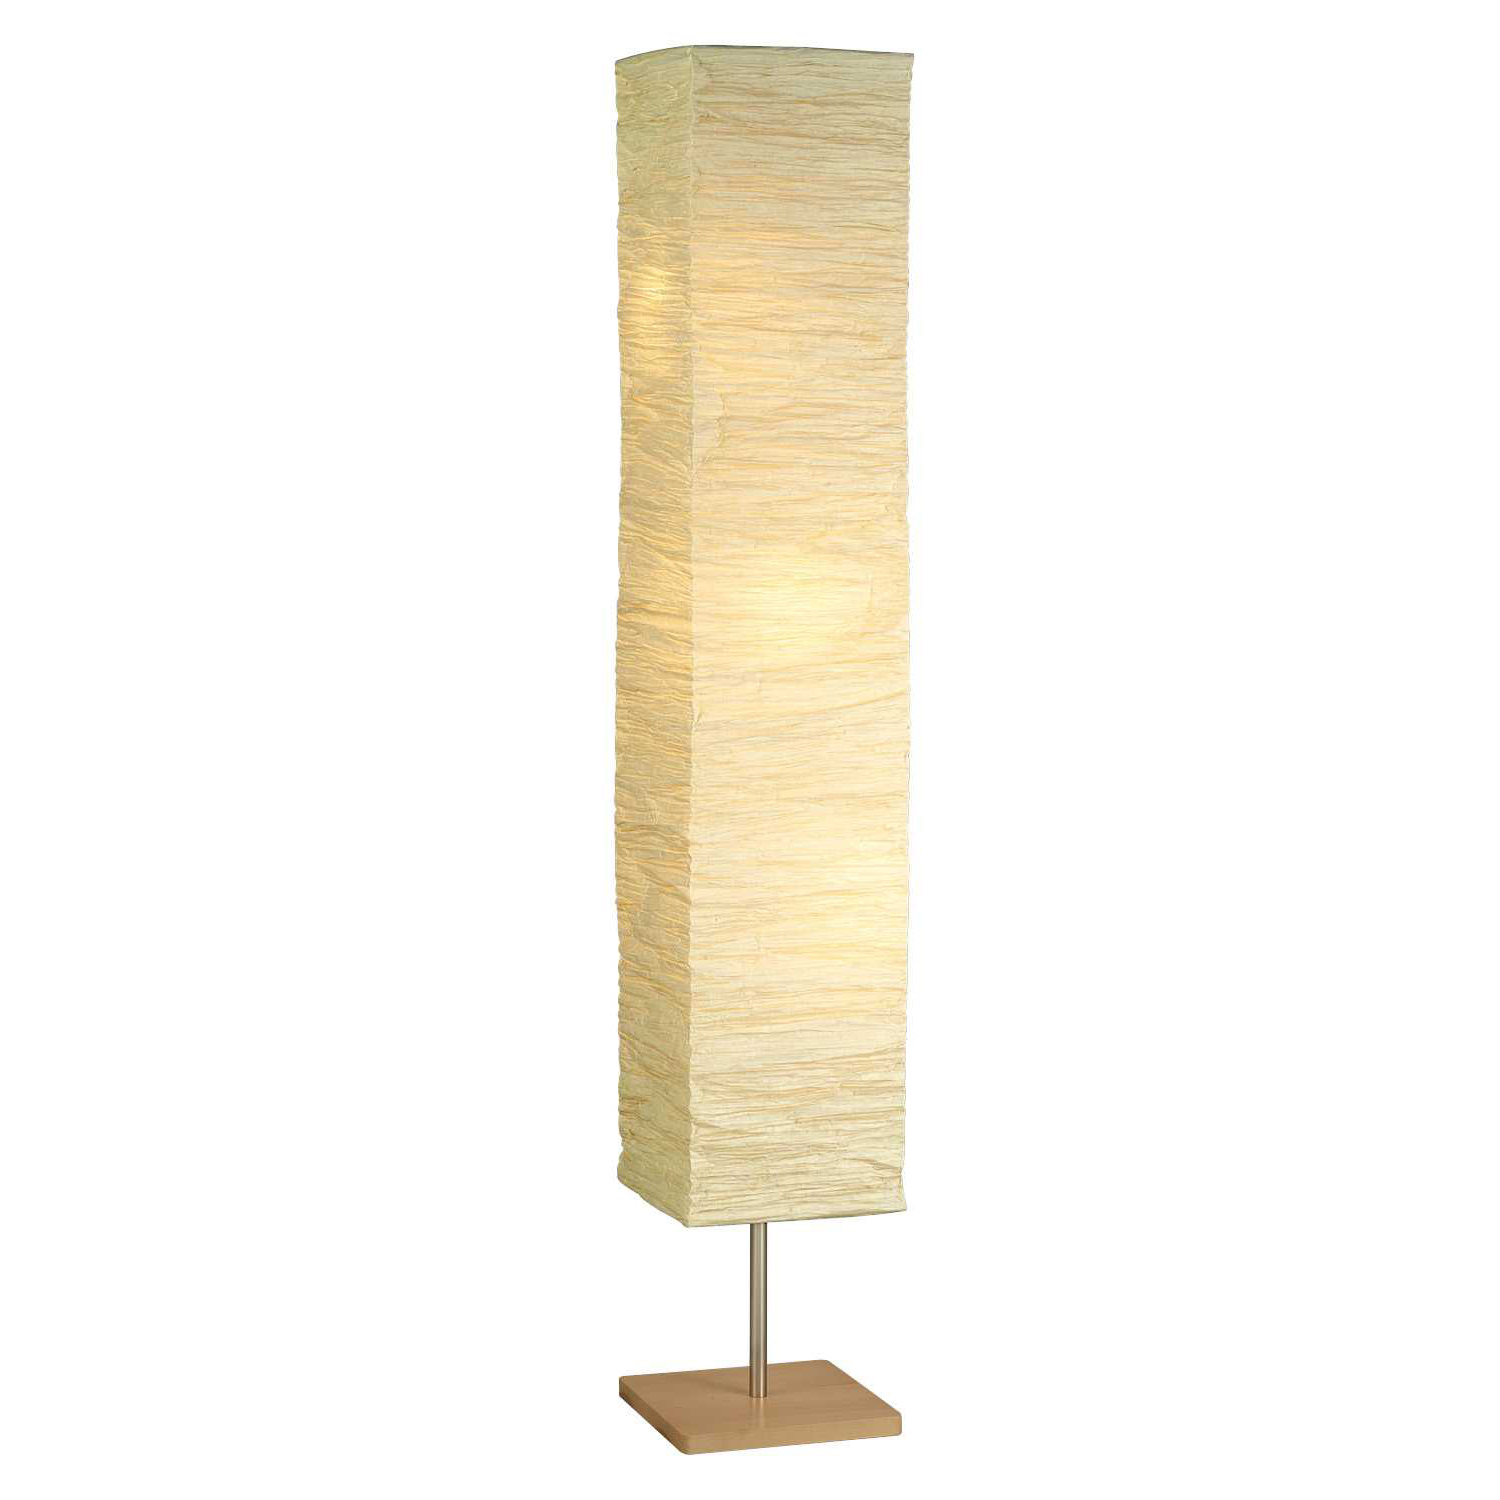 Adesso Home Dune Collection Modern Torchiere Floor Lamp w/ Crinkle Paper Shade